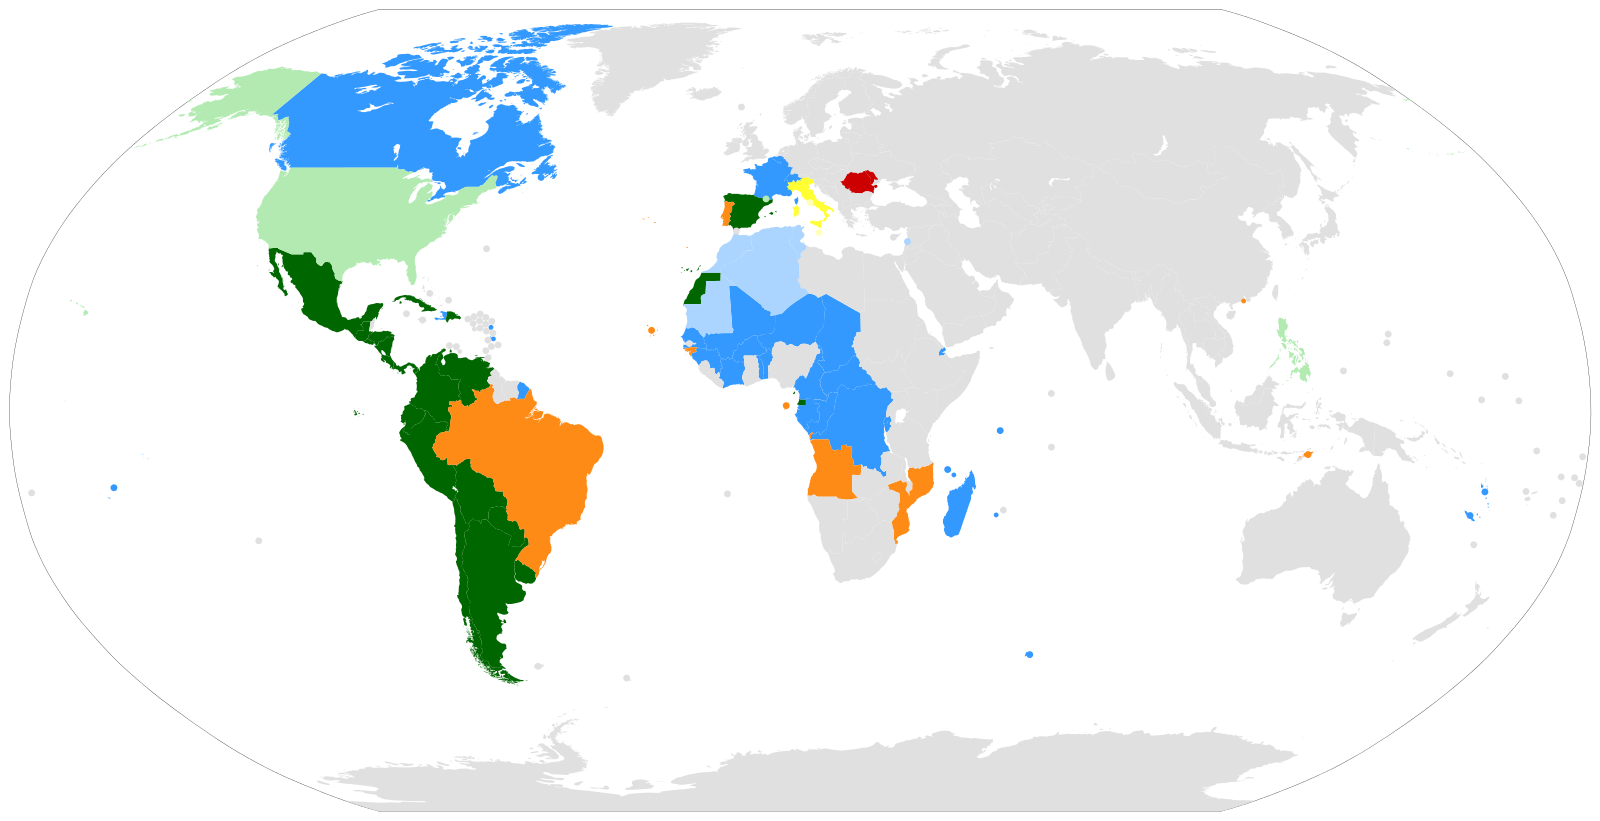 A map showing the countries where Romance languages have official status (darker colours), or are commonly spoken by people (lighter colours). Blue (French); green (Spanish); orange (Portuguese); red (Romanian); yellow (Italian).